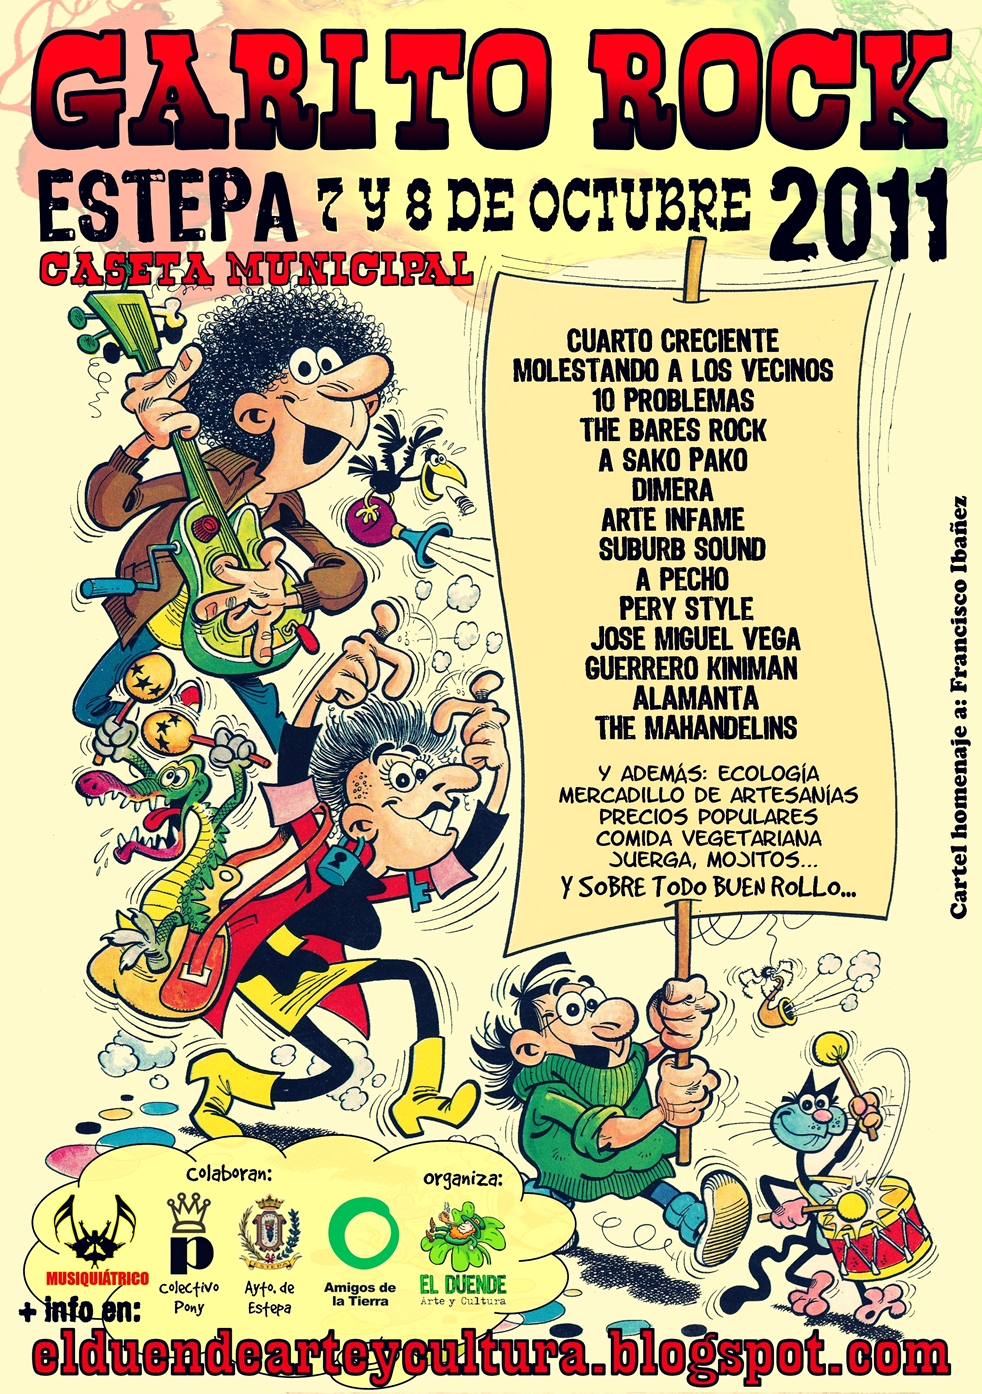 Cartel Garito Rock 2011